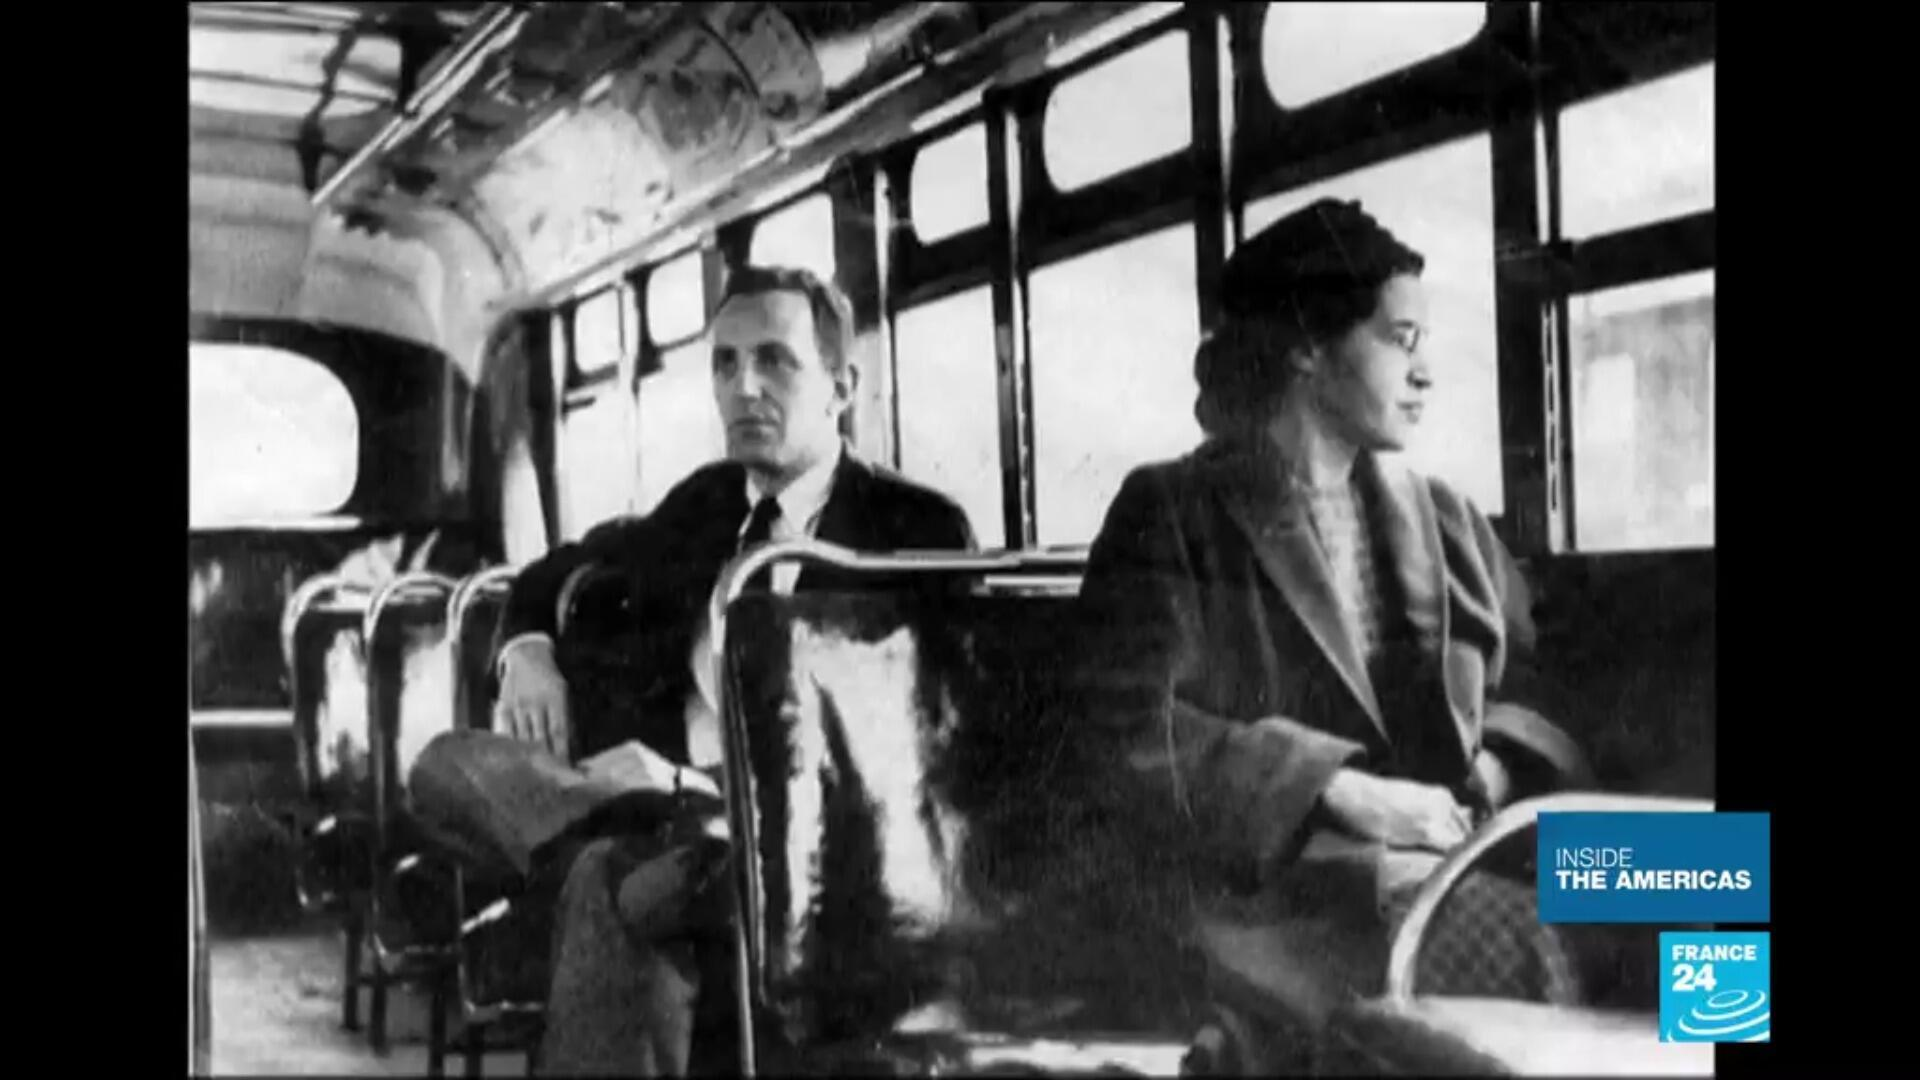 Rosa Parks in 1955. She became a key figure of the civil rights movement for refusing to give up her seat to a white passenger on a bus.